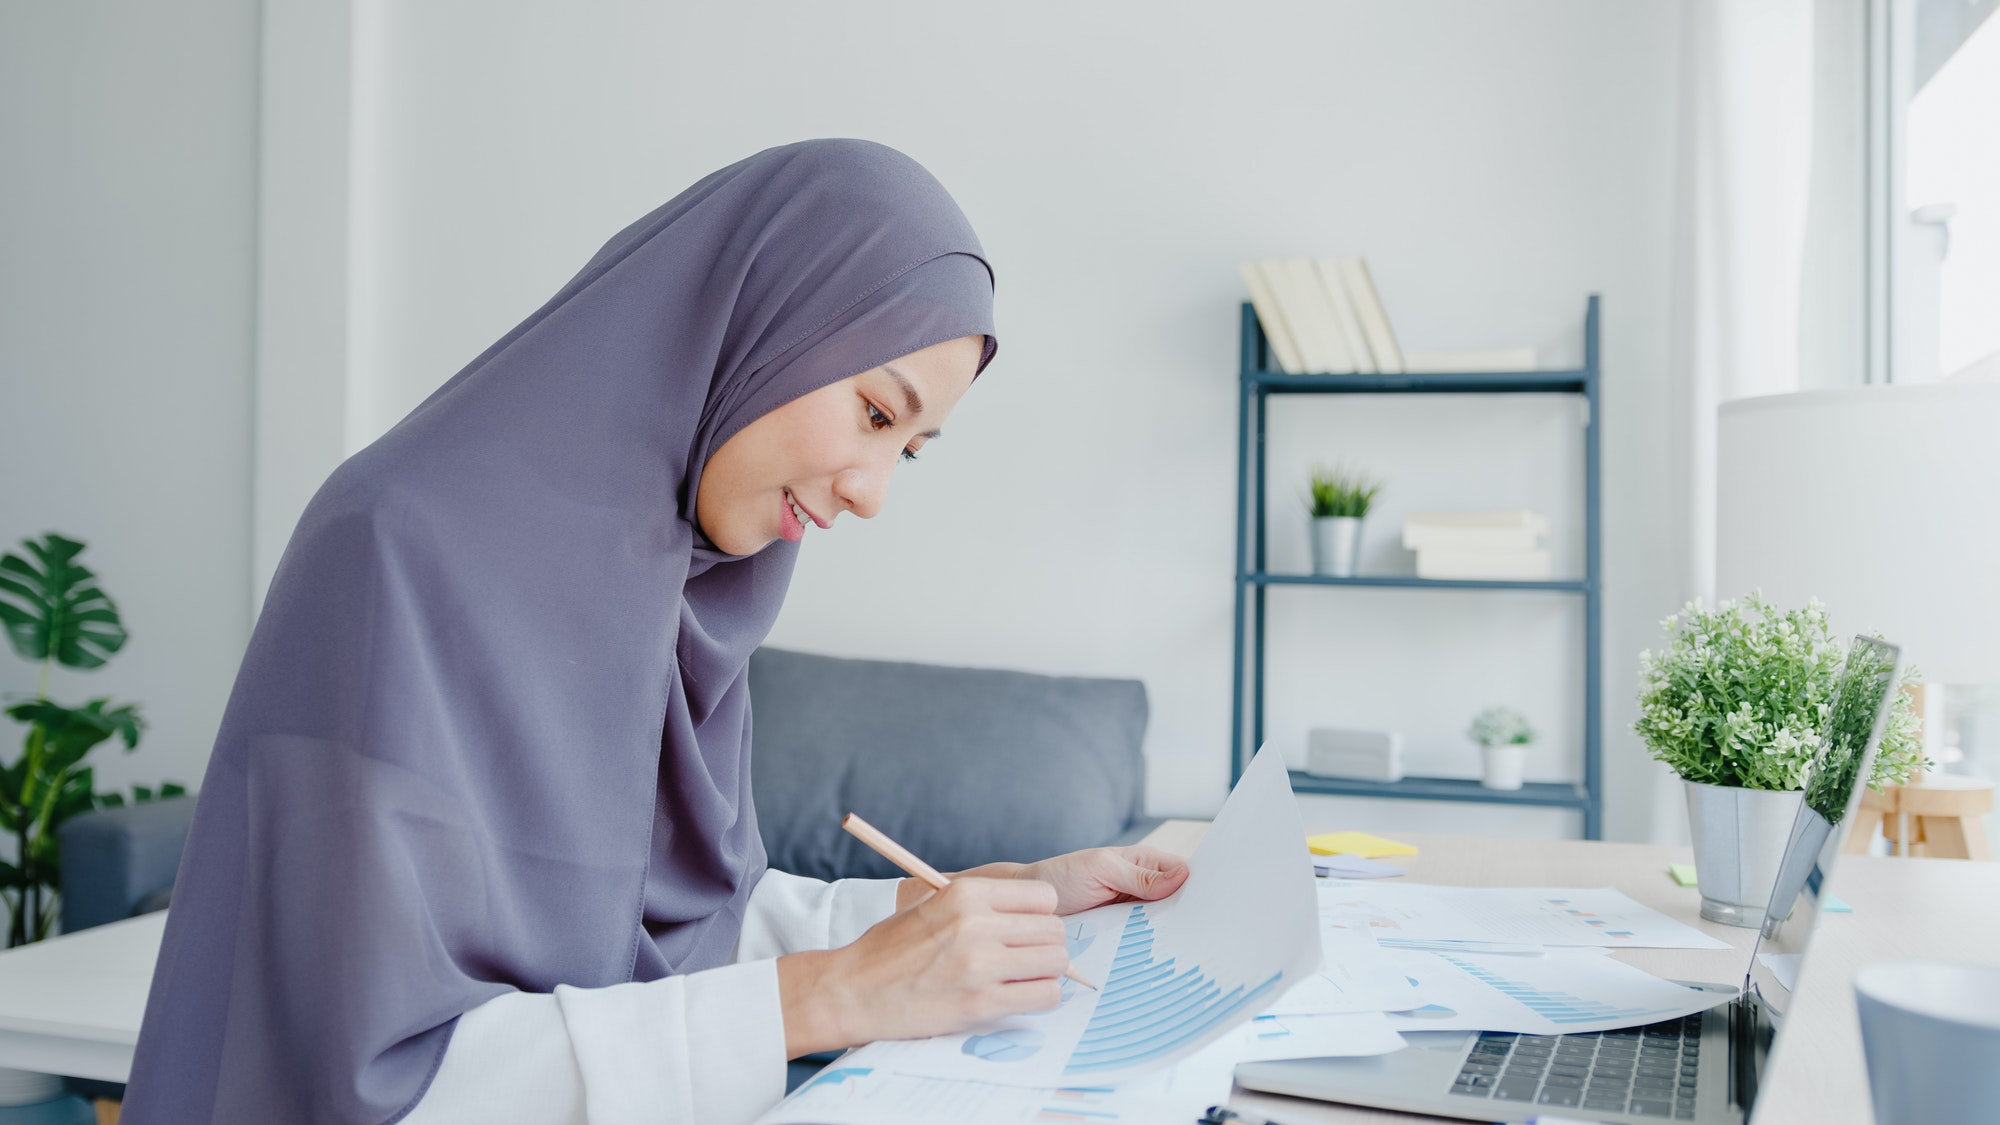 Beautiful Asia muslim lady in headscarf using laptop in living room at house.